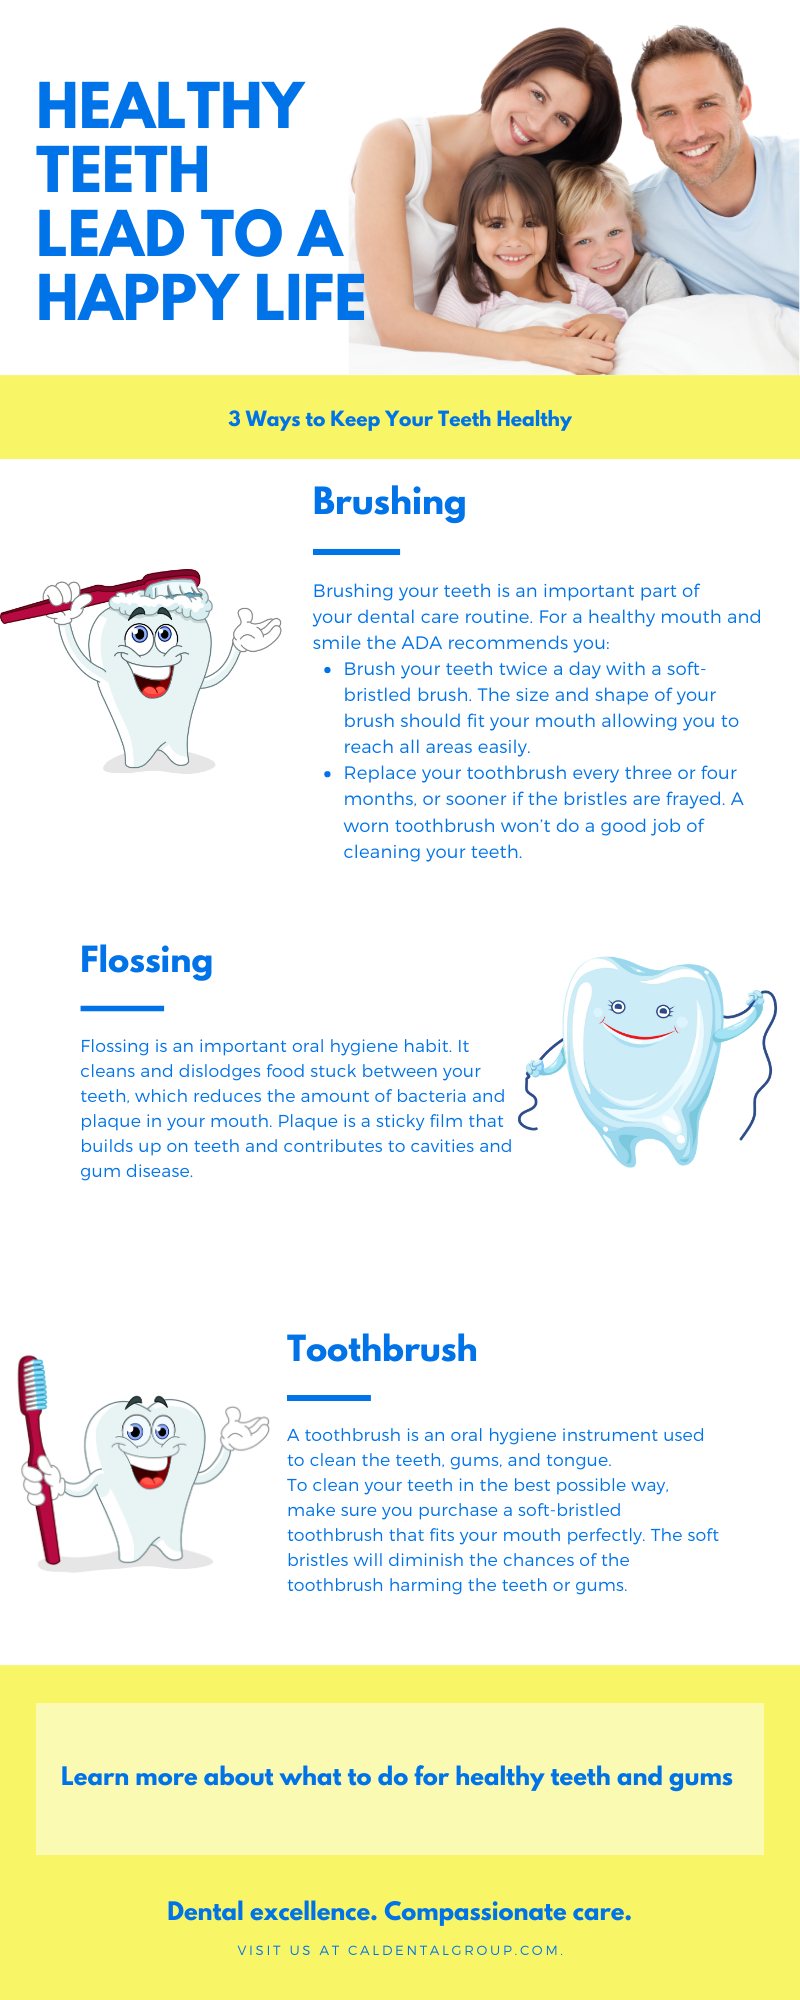 Healthy Teeth Lead to a Happy Life